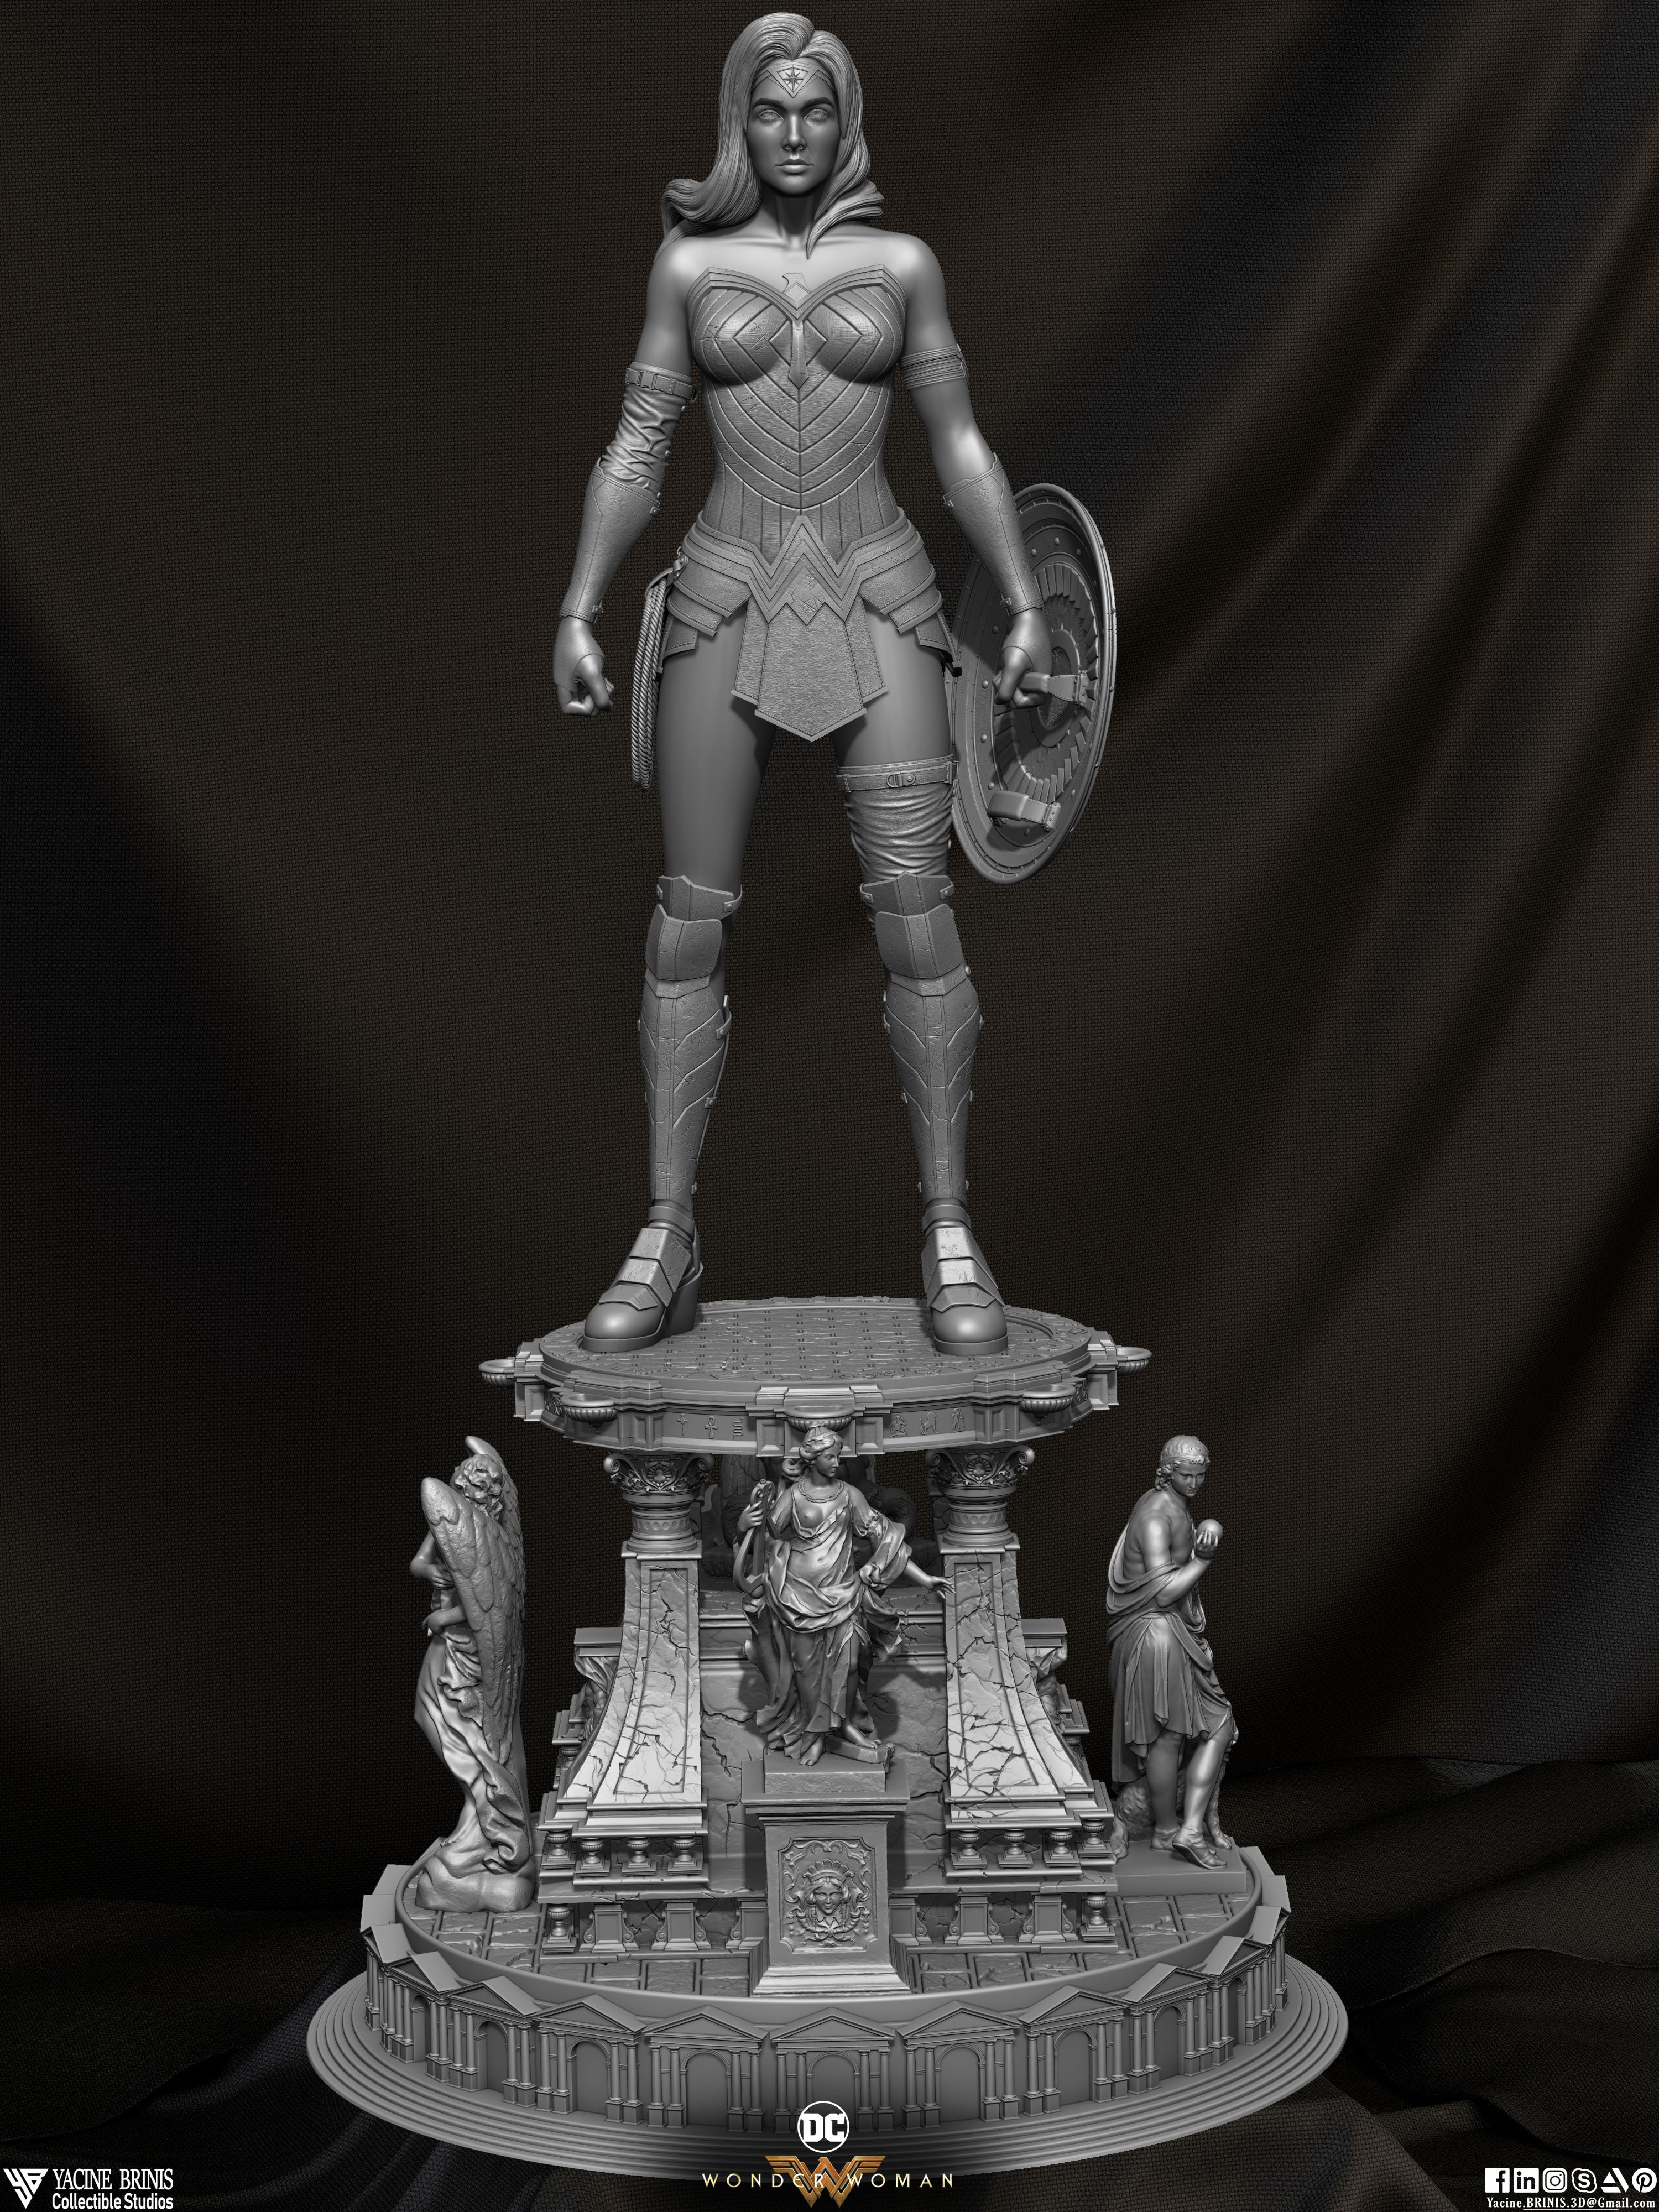 Wonder Woman ZBrush Version, Personal Project (Sculpted By Yacine BRINIS) Set 01